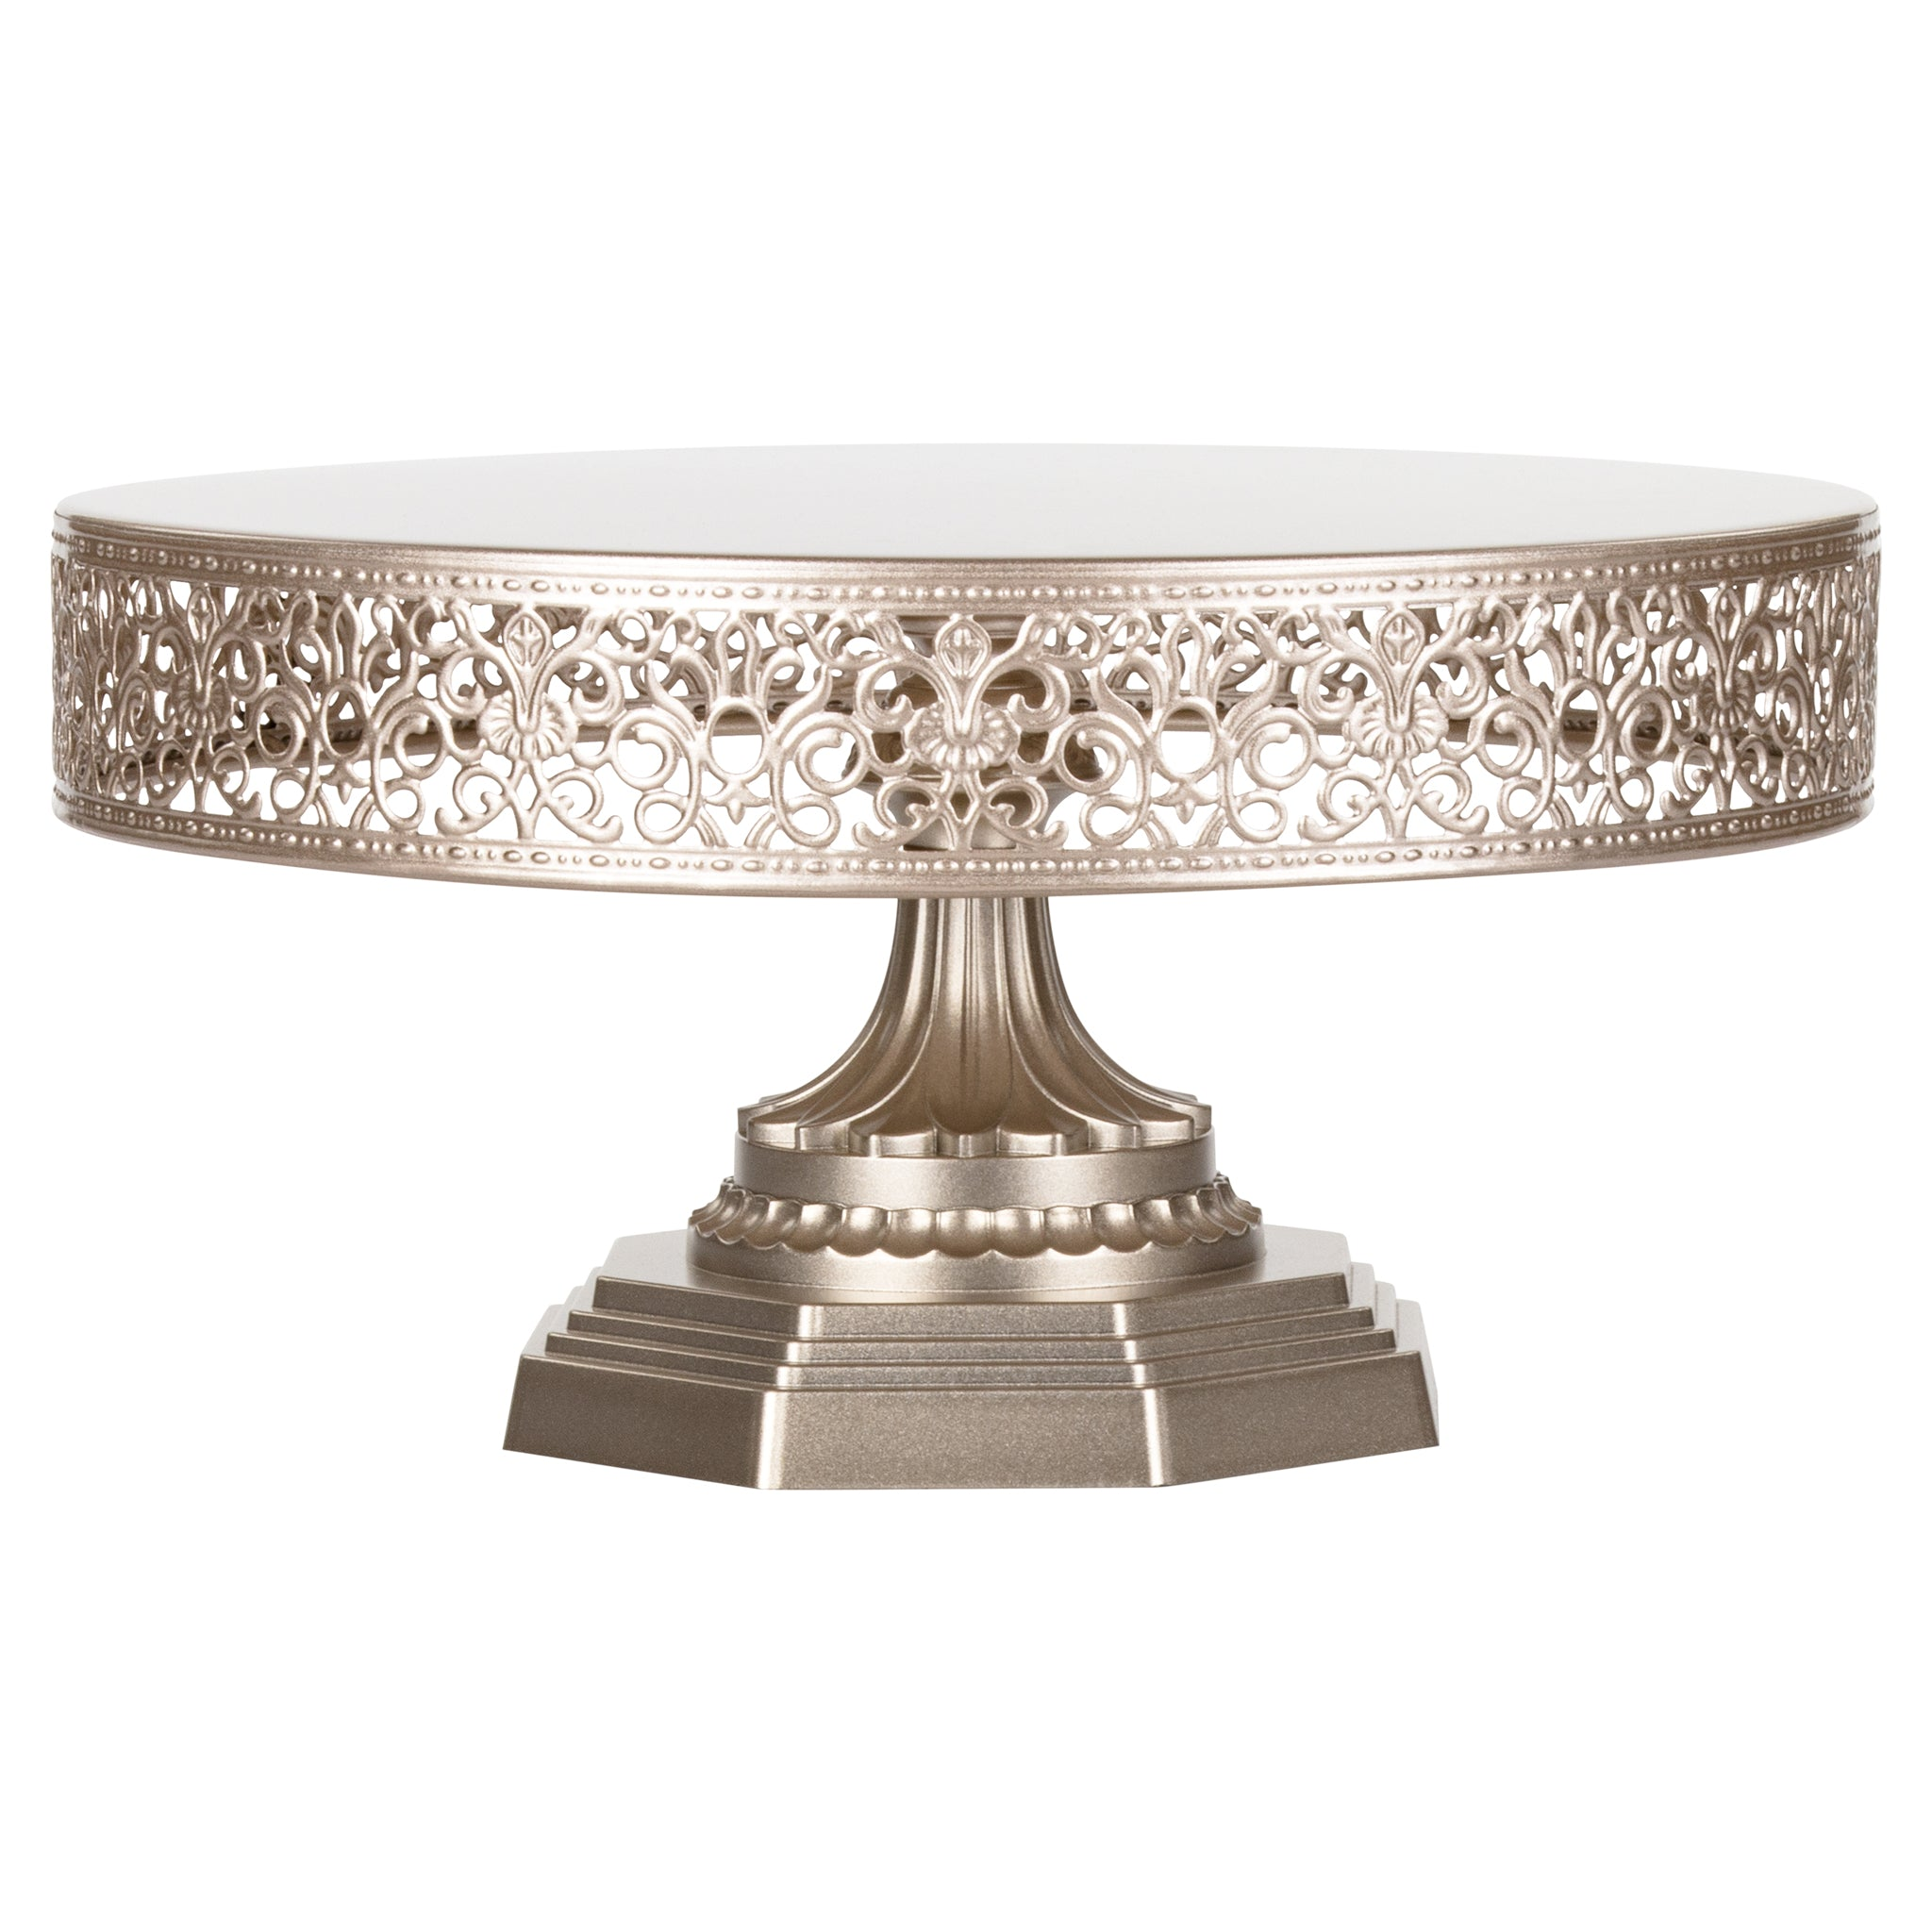 Amalfi Decor 12 Inch Round Metal Wedding Cake Stand (Champagne) | Stainless Steel Frame